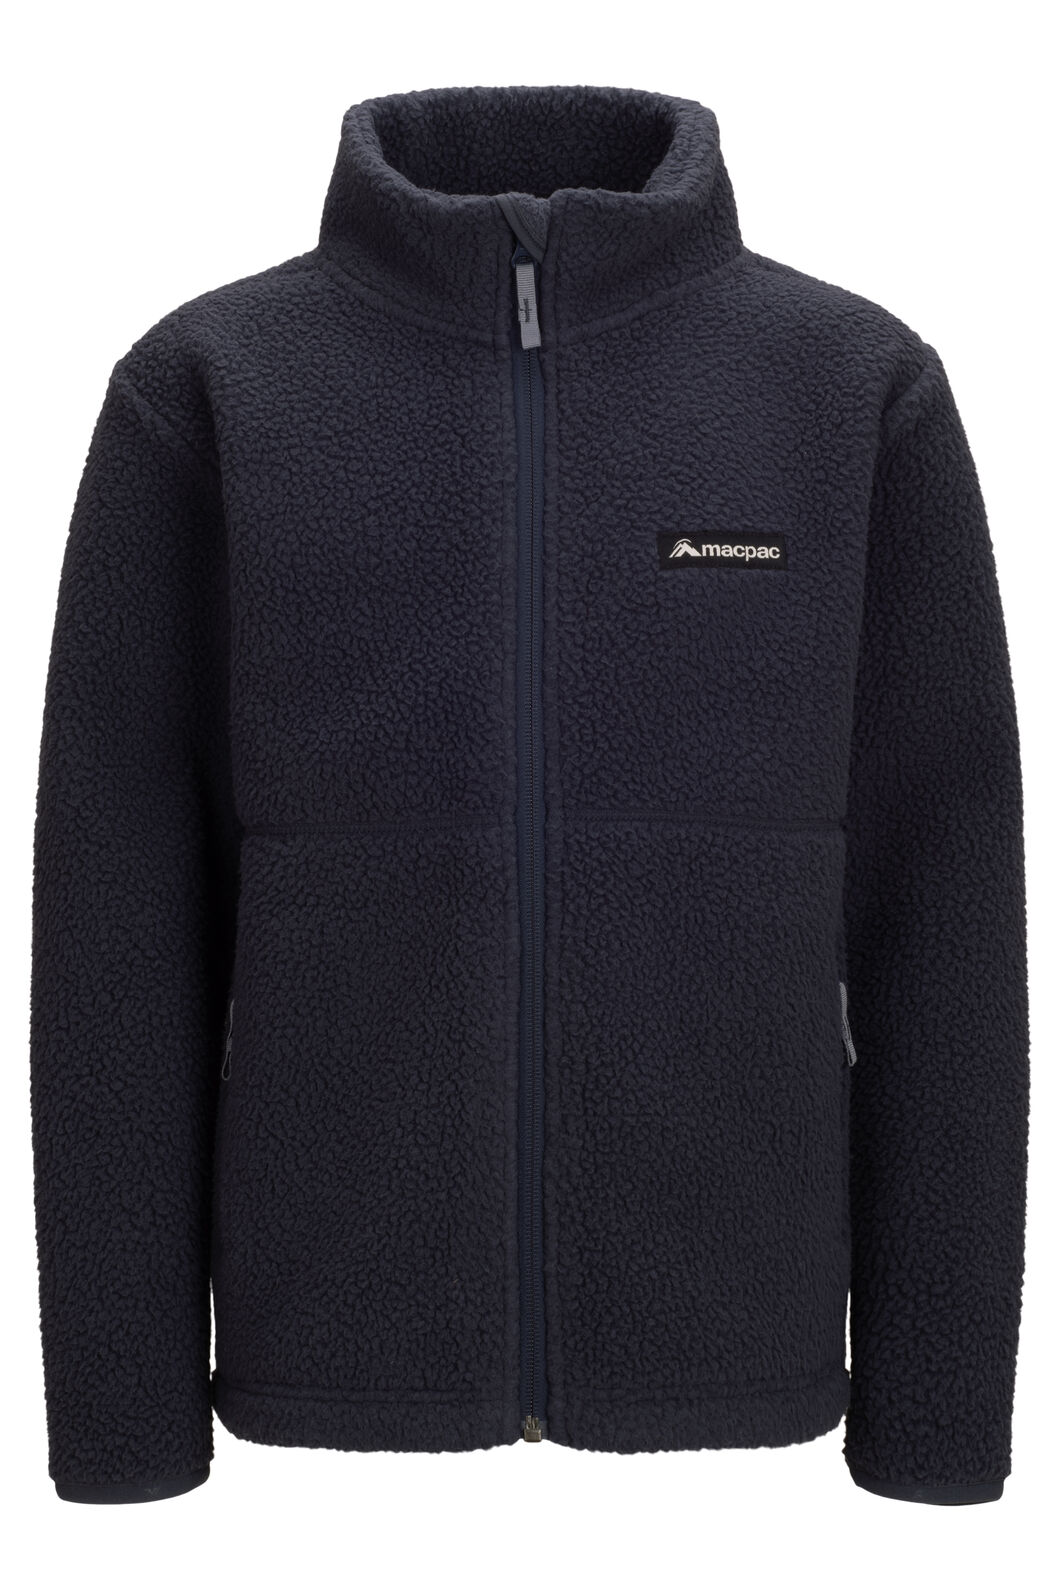 Macpac North Col Fleece — Kids', BLUE NIGHTS, hi-res